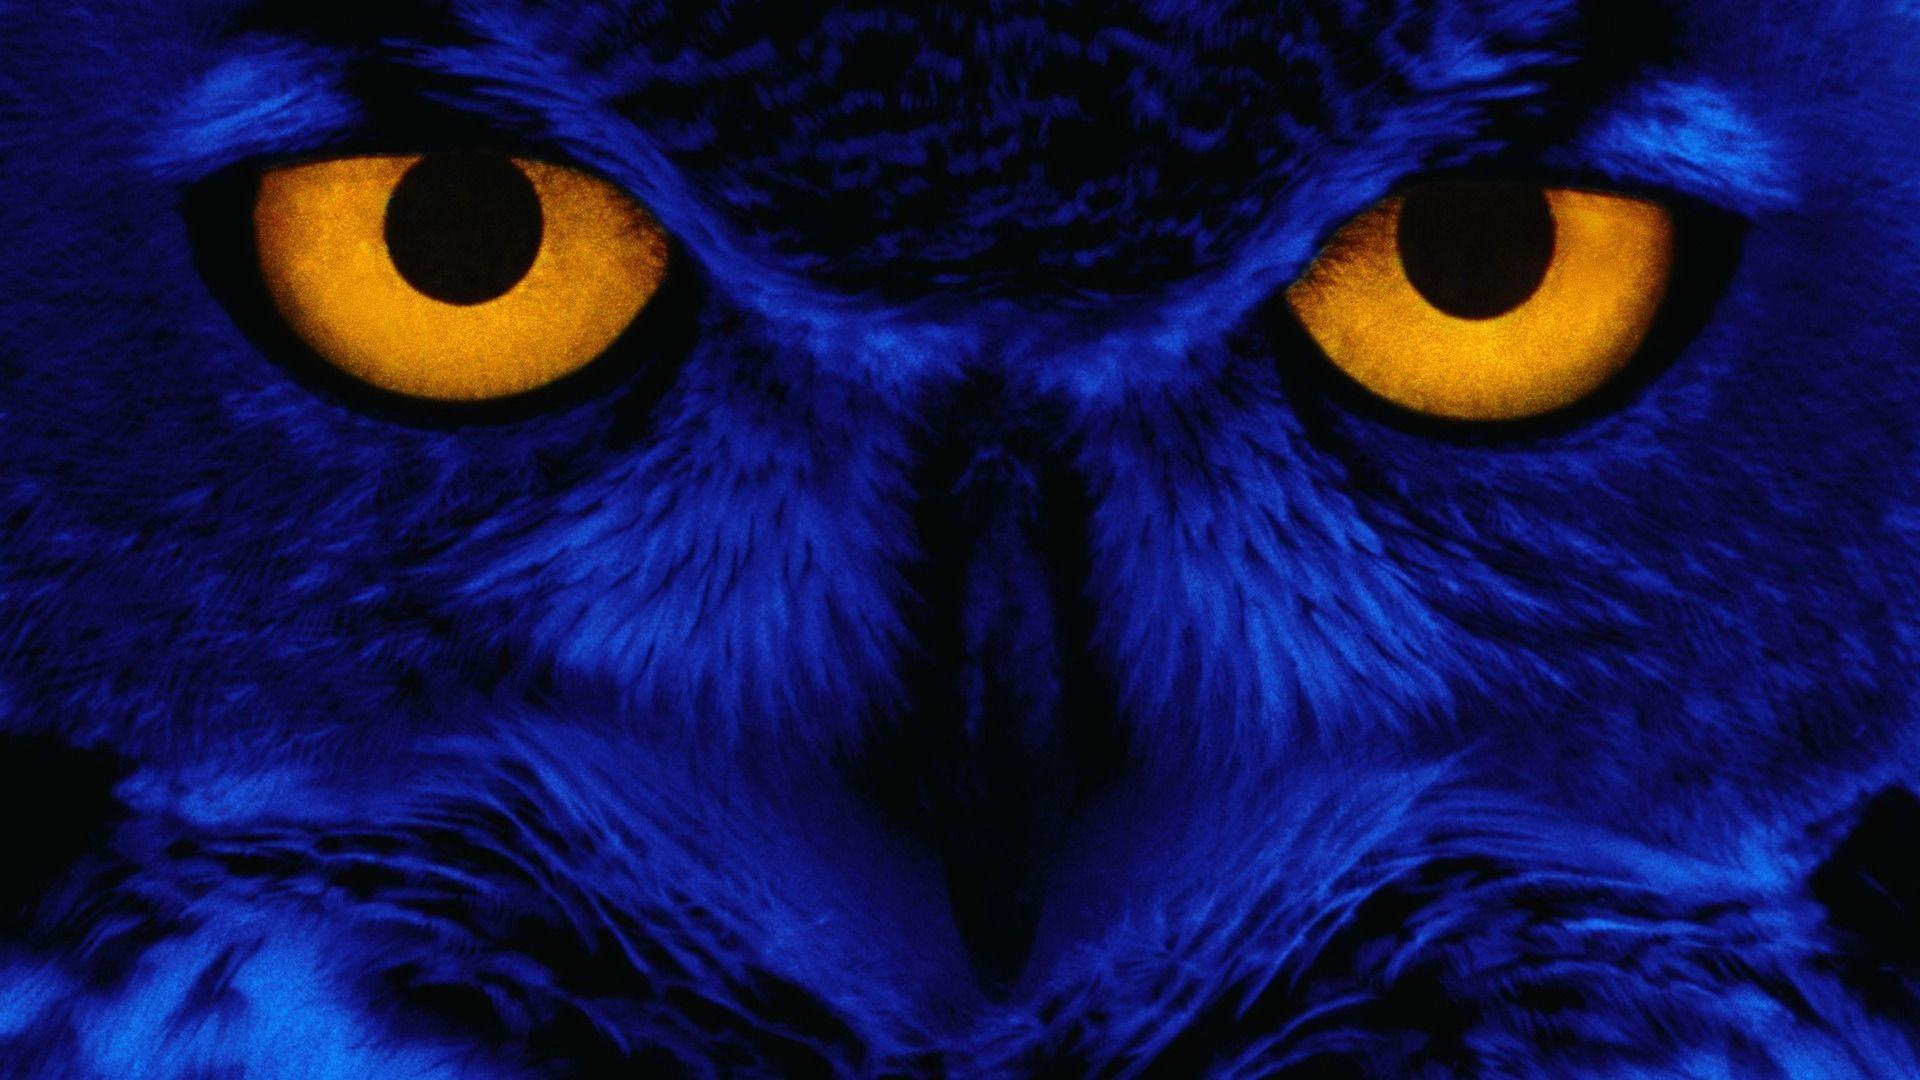 owl wallpaper | owl wallpaper - Part 3